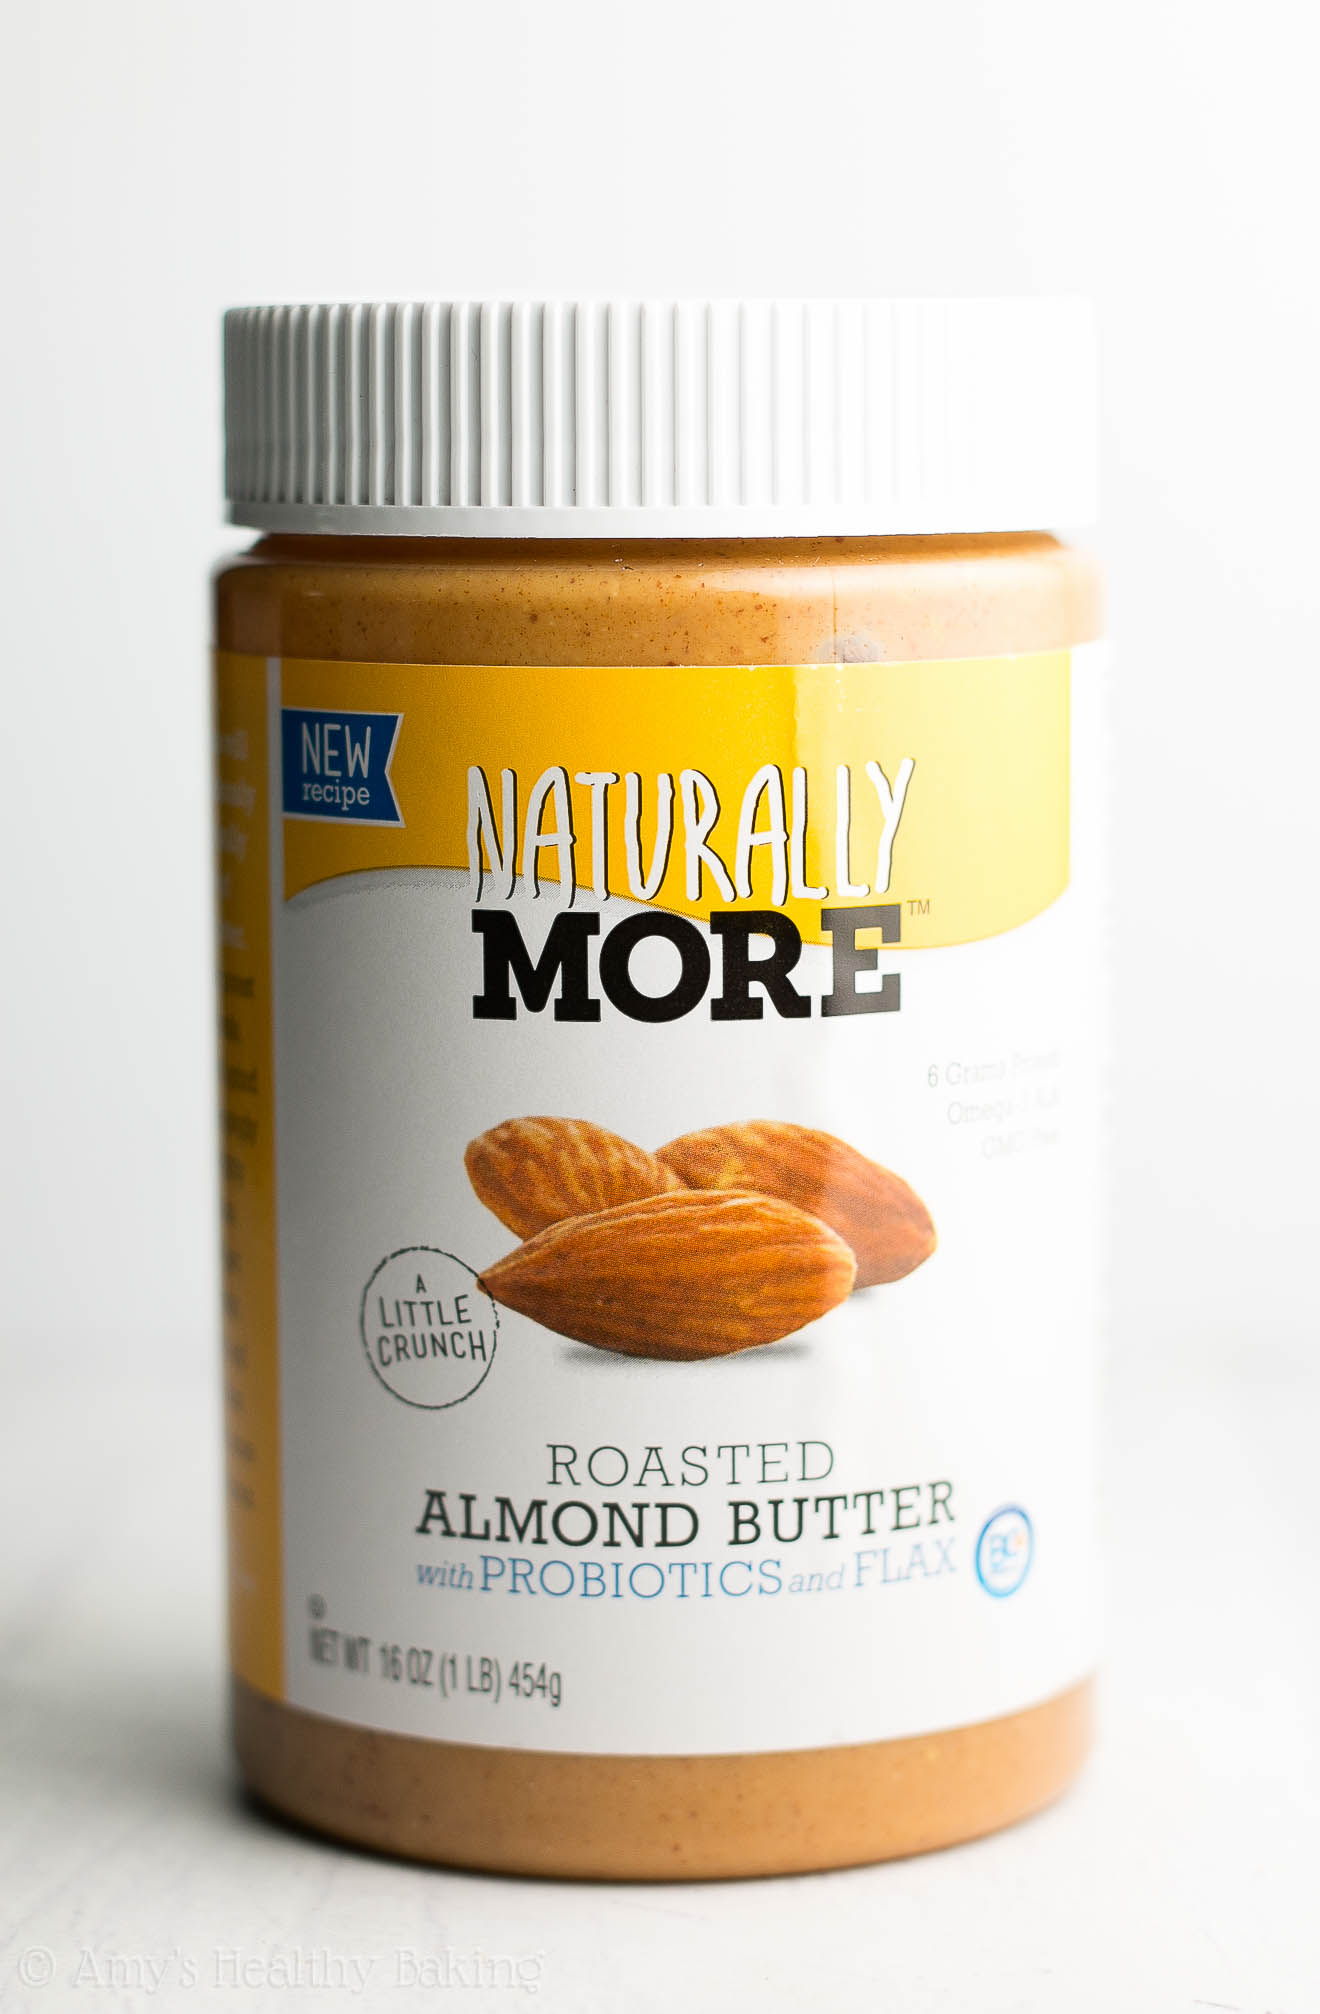 NaturallyMore's Roasted Almond Butter -- made with simple, good-for-you ingredients like California almonds, flaxseeds, and probiotics that promote good gut health. It tastes incredible too! ad